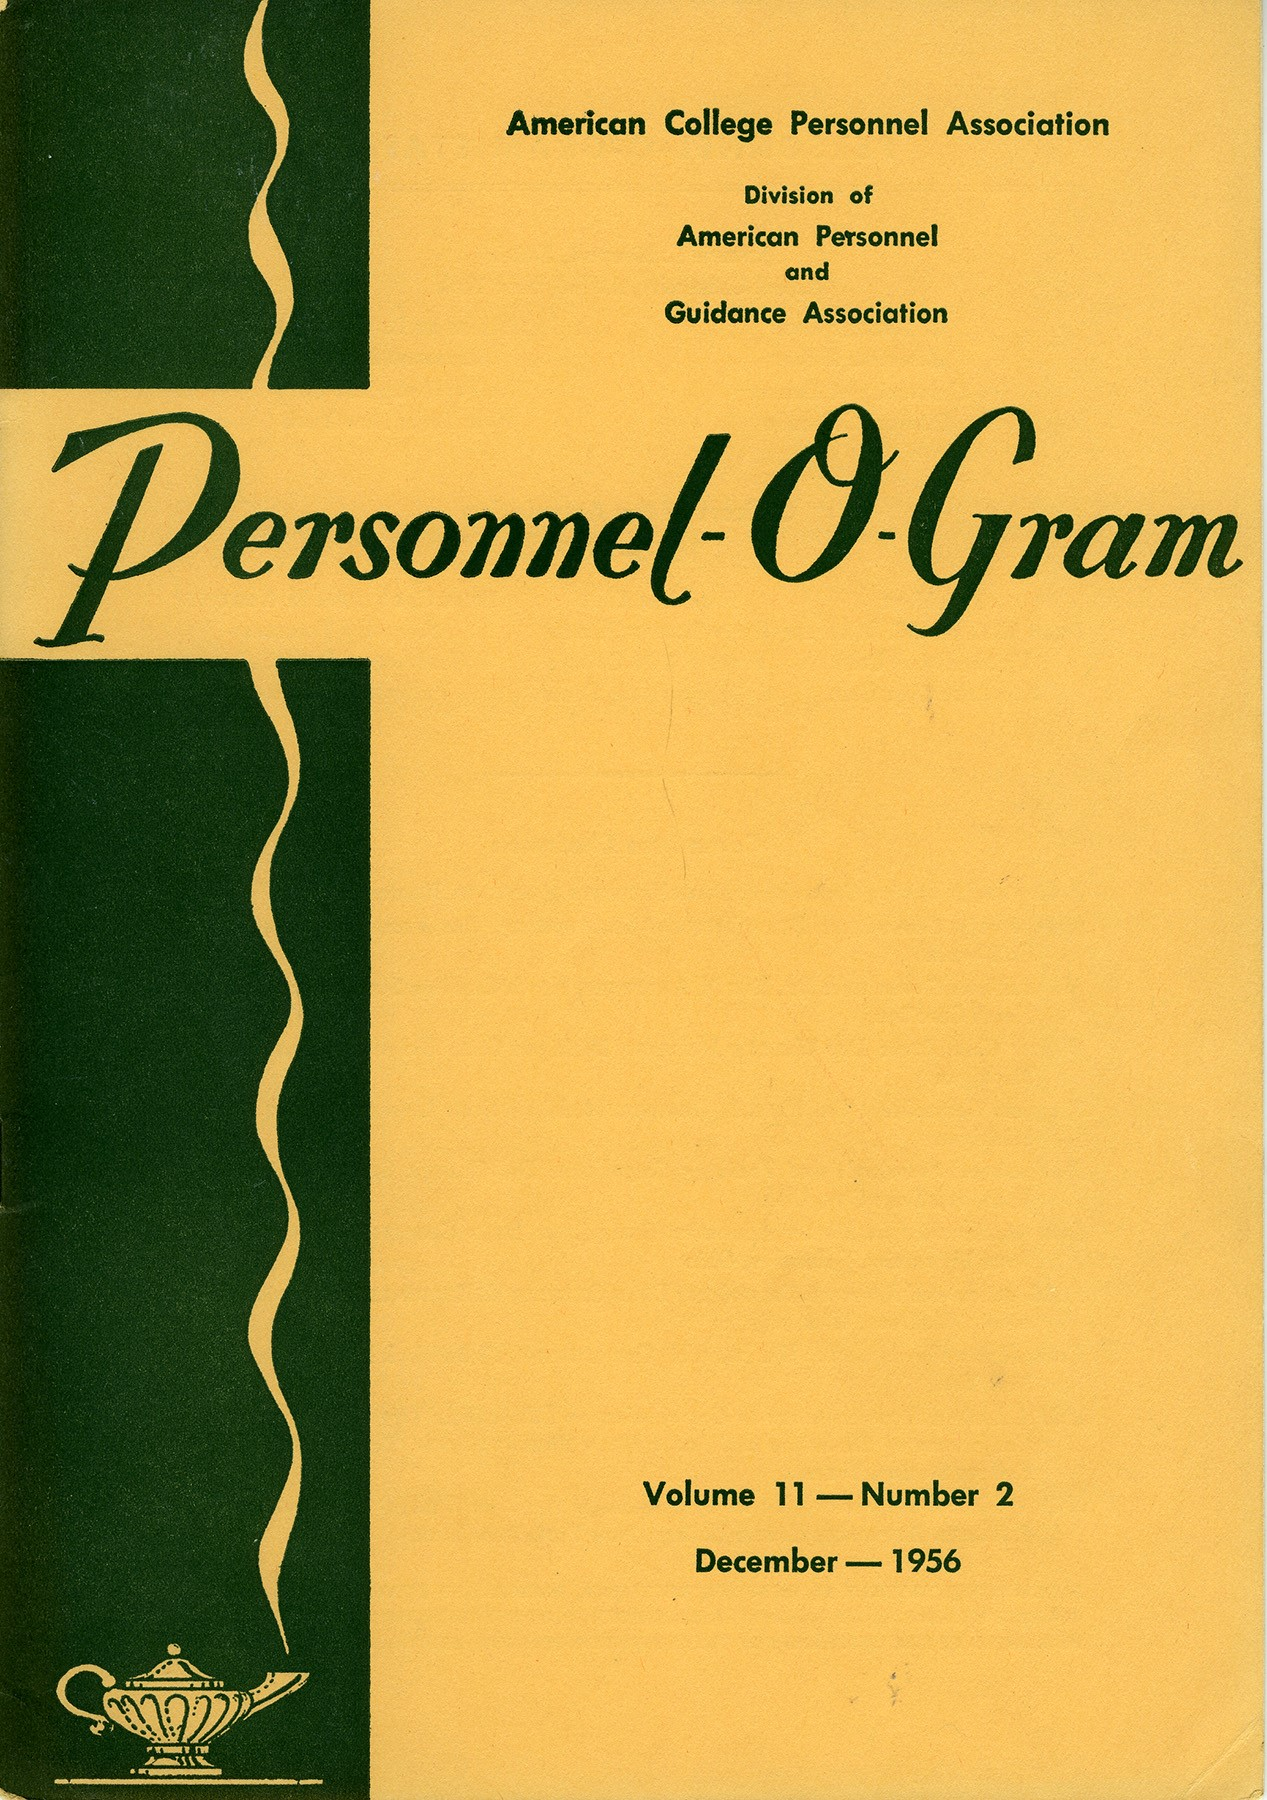 Personnel-O-Gram includes Conference Proceedings and ACPA Directory